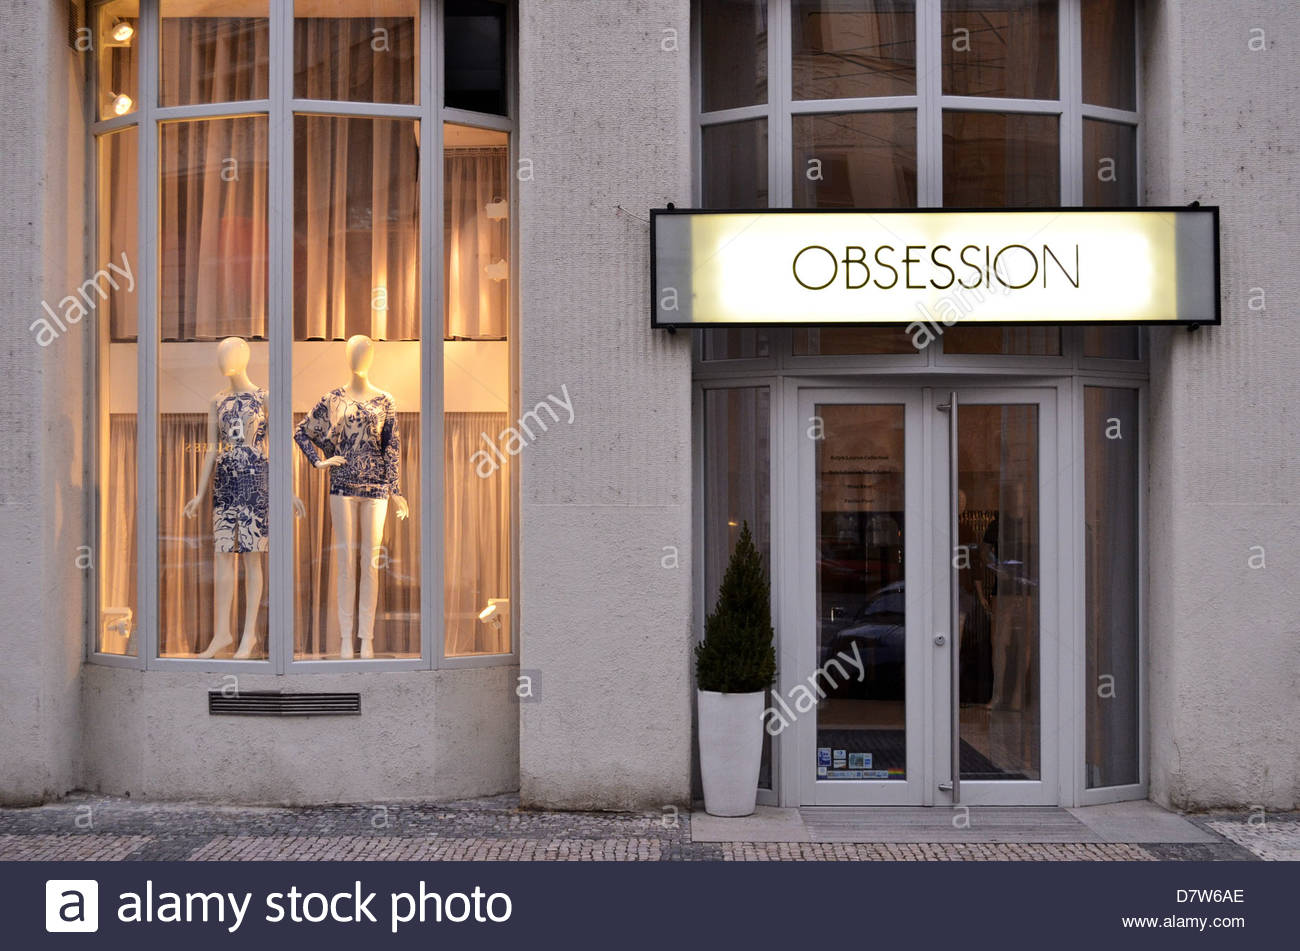 ''Obsession'' multiple fashion brands store in Old Town Prague Czech Republic - Stock Image